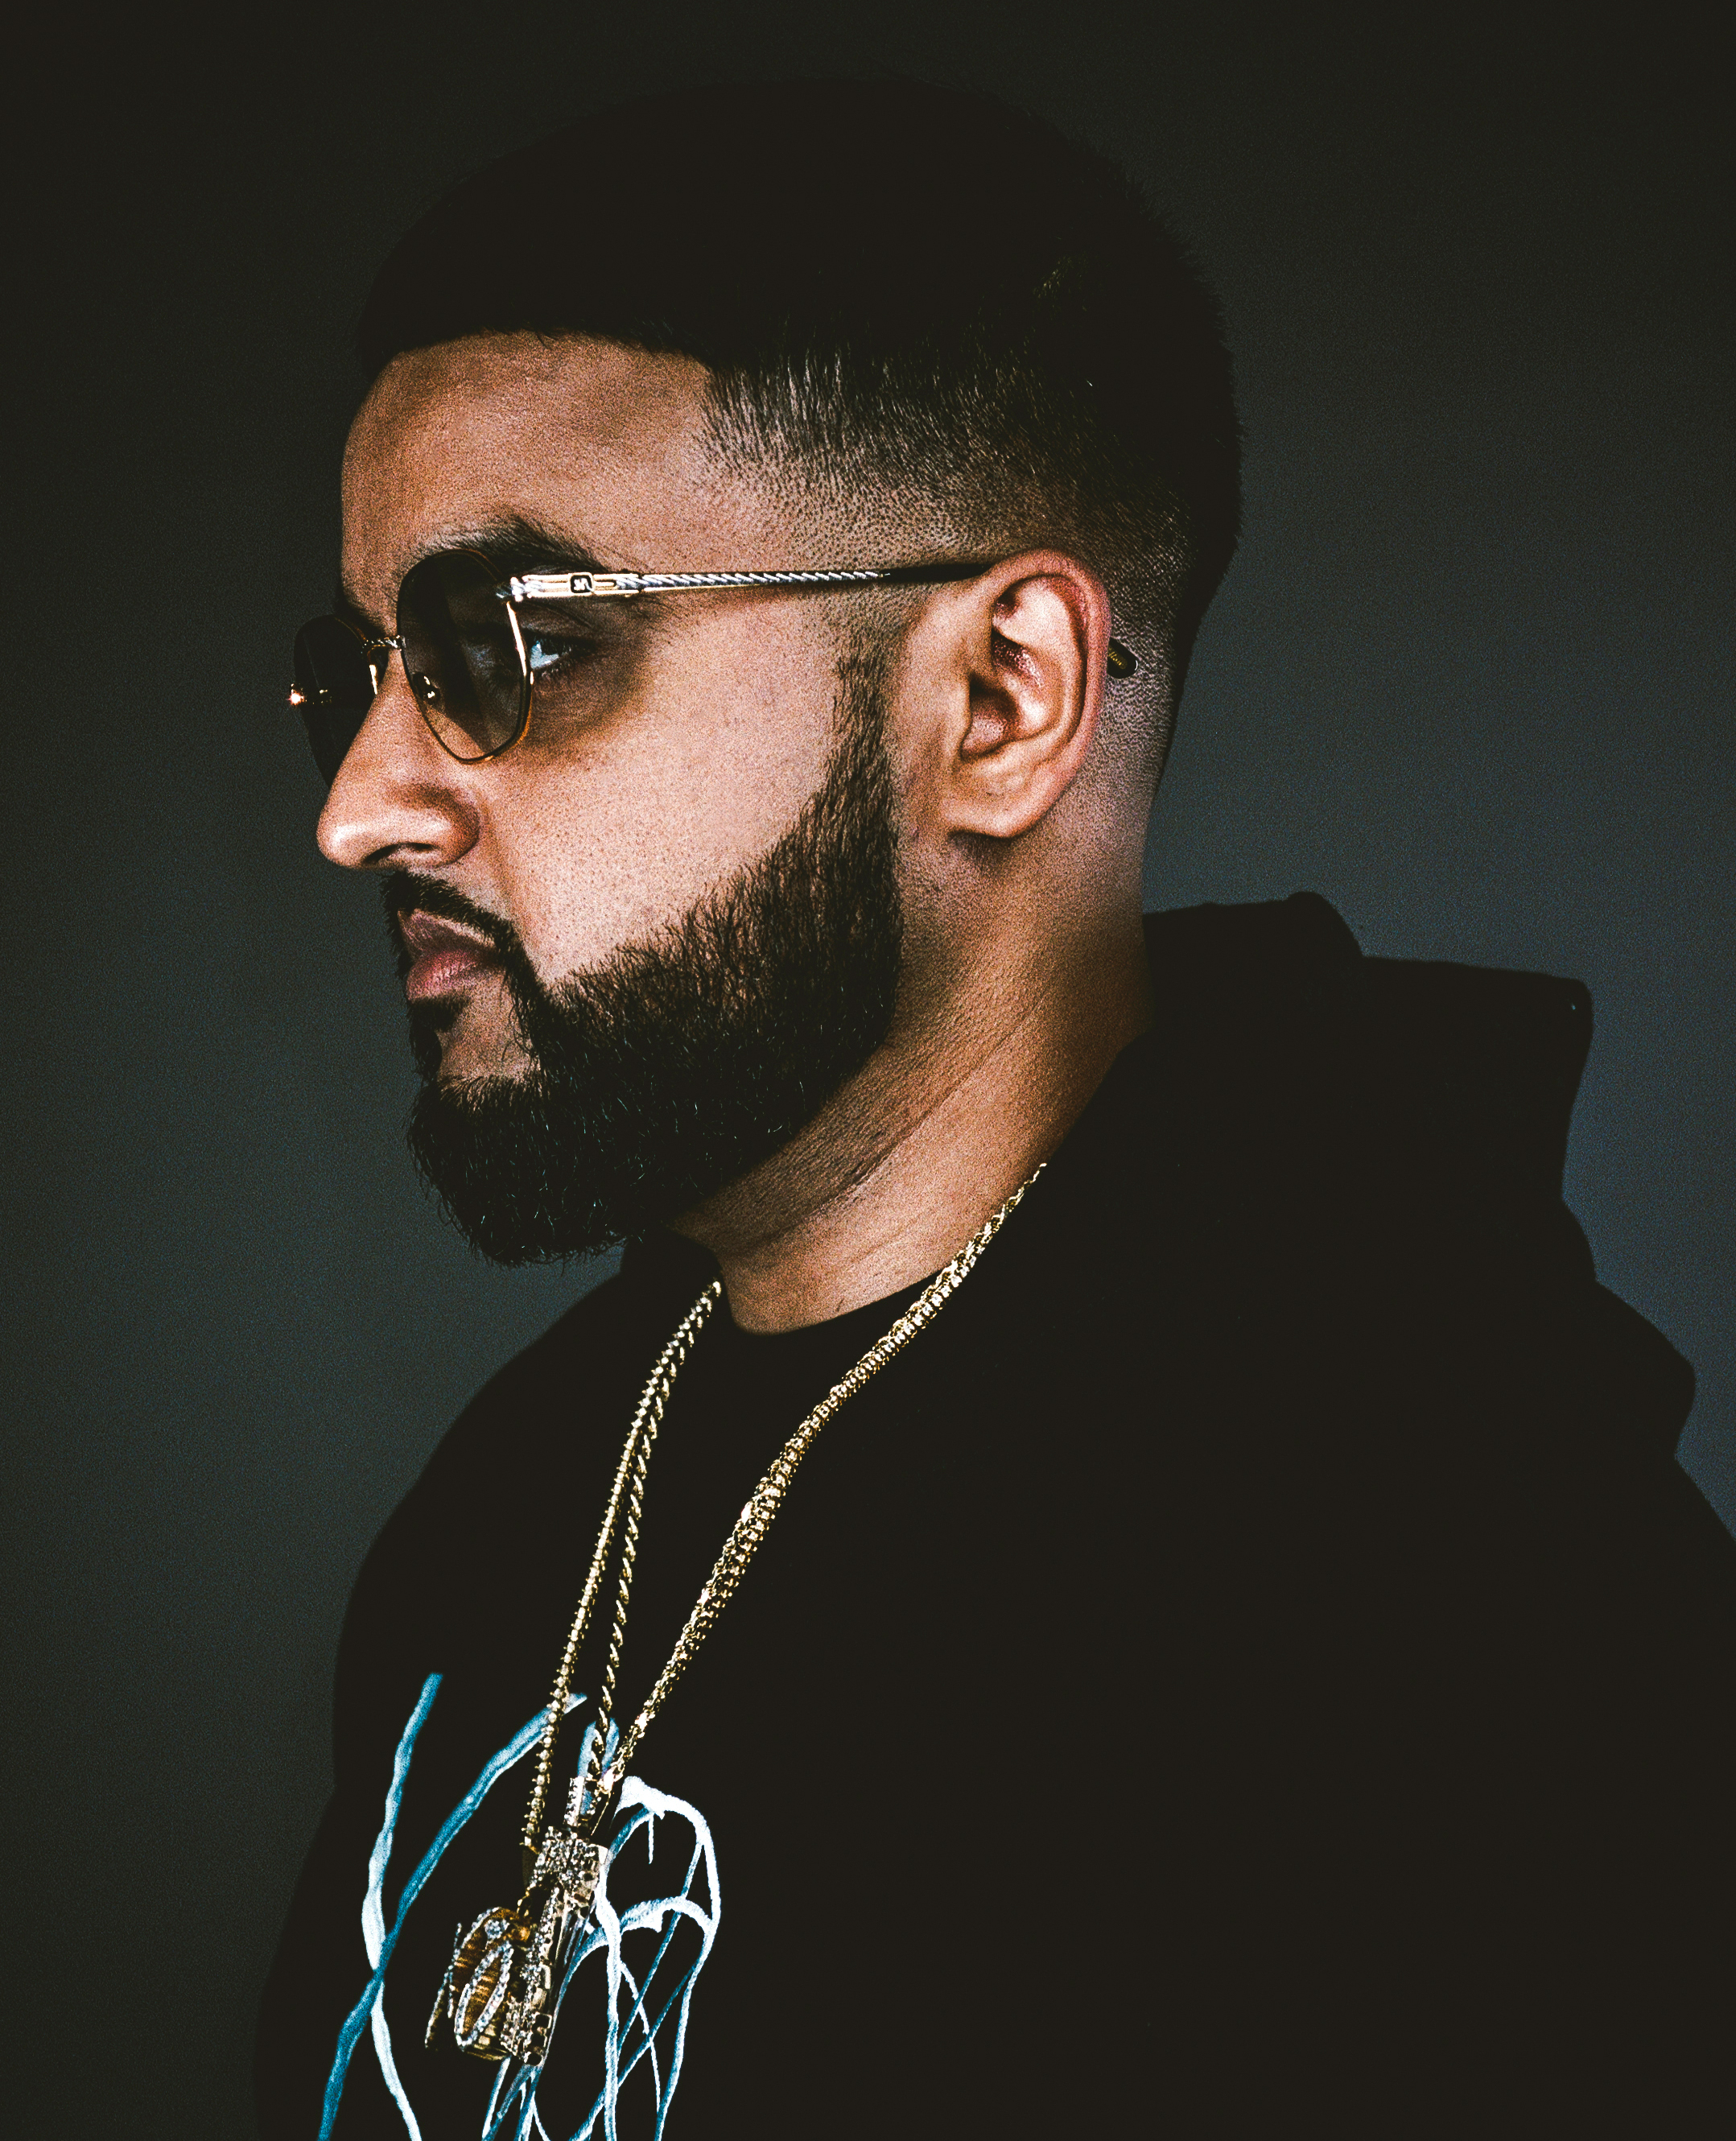 The 31-year old son of father (?) and mother(?) Nav in 2021 photo. Nav earned a  million dollar salary - leaving the net worth at  million in 2021